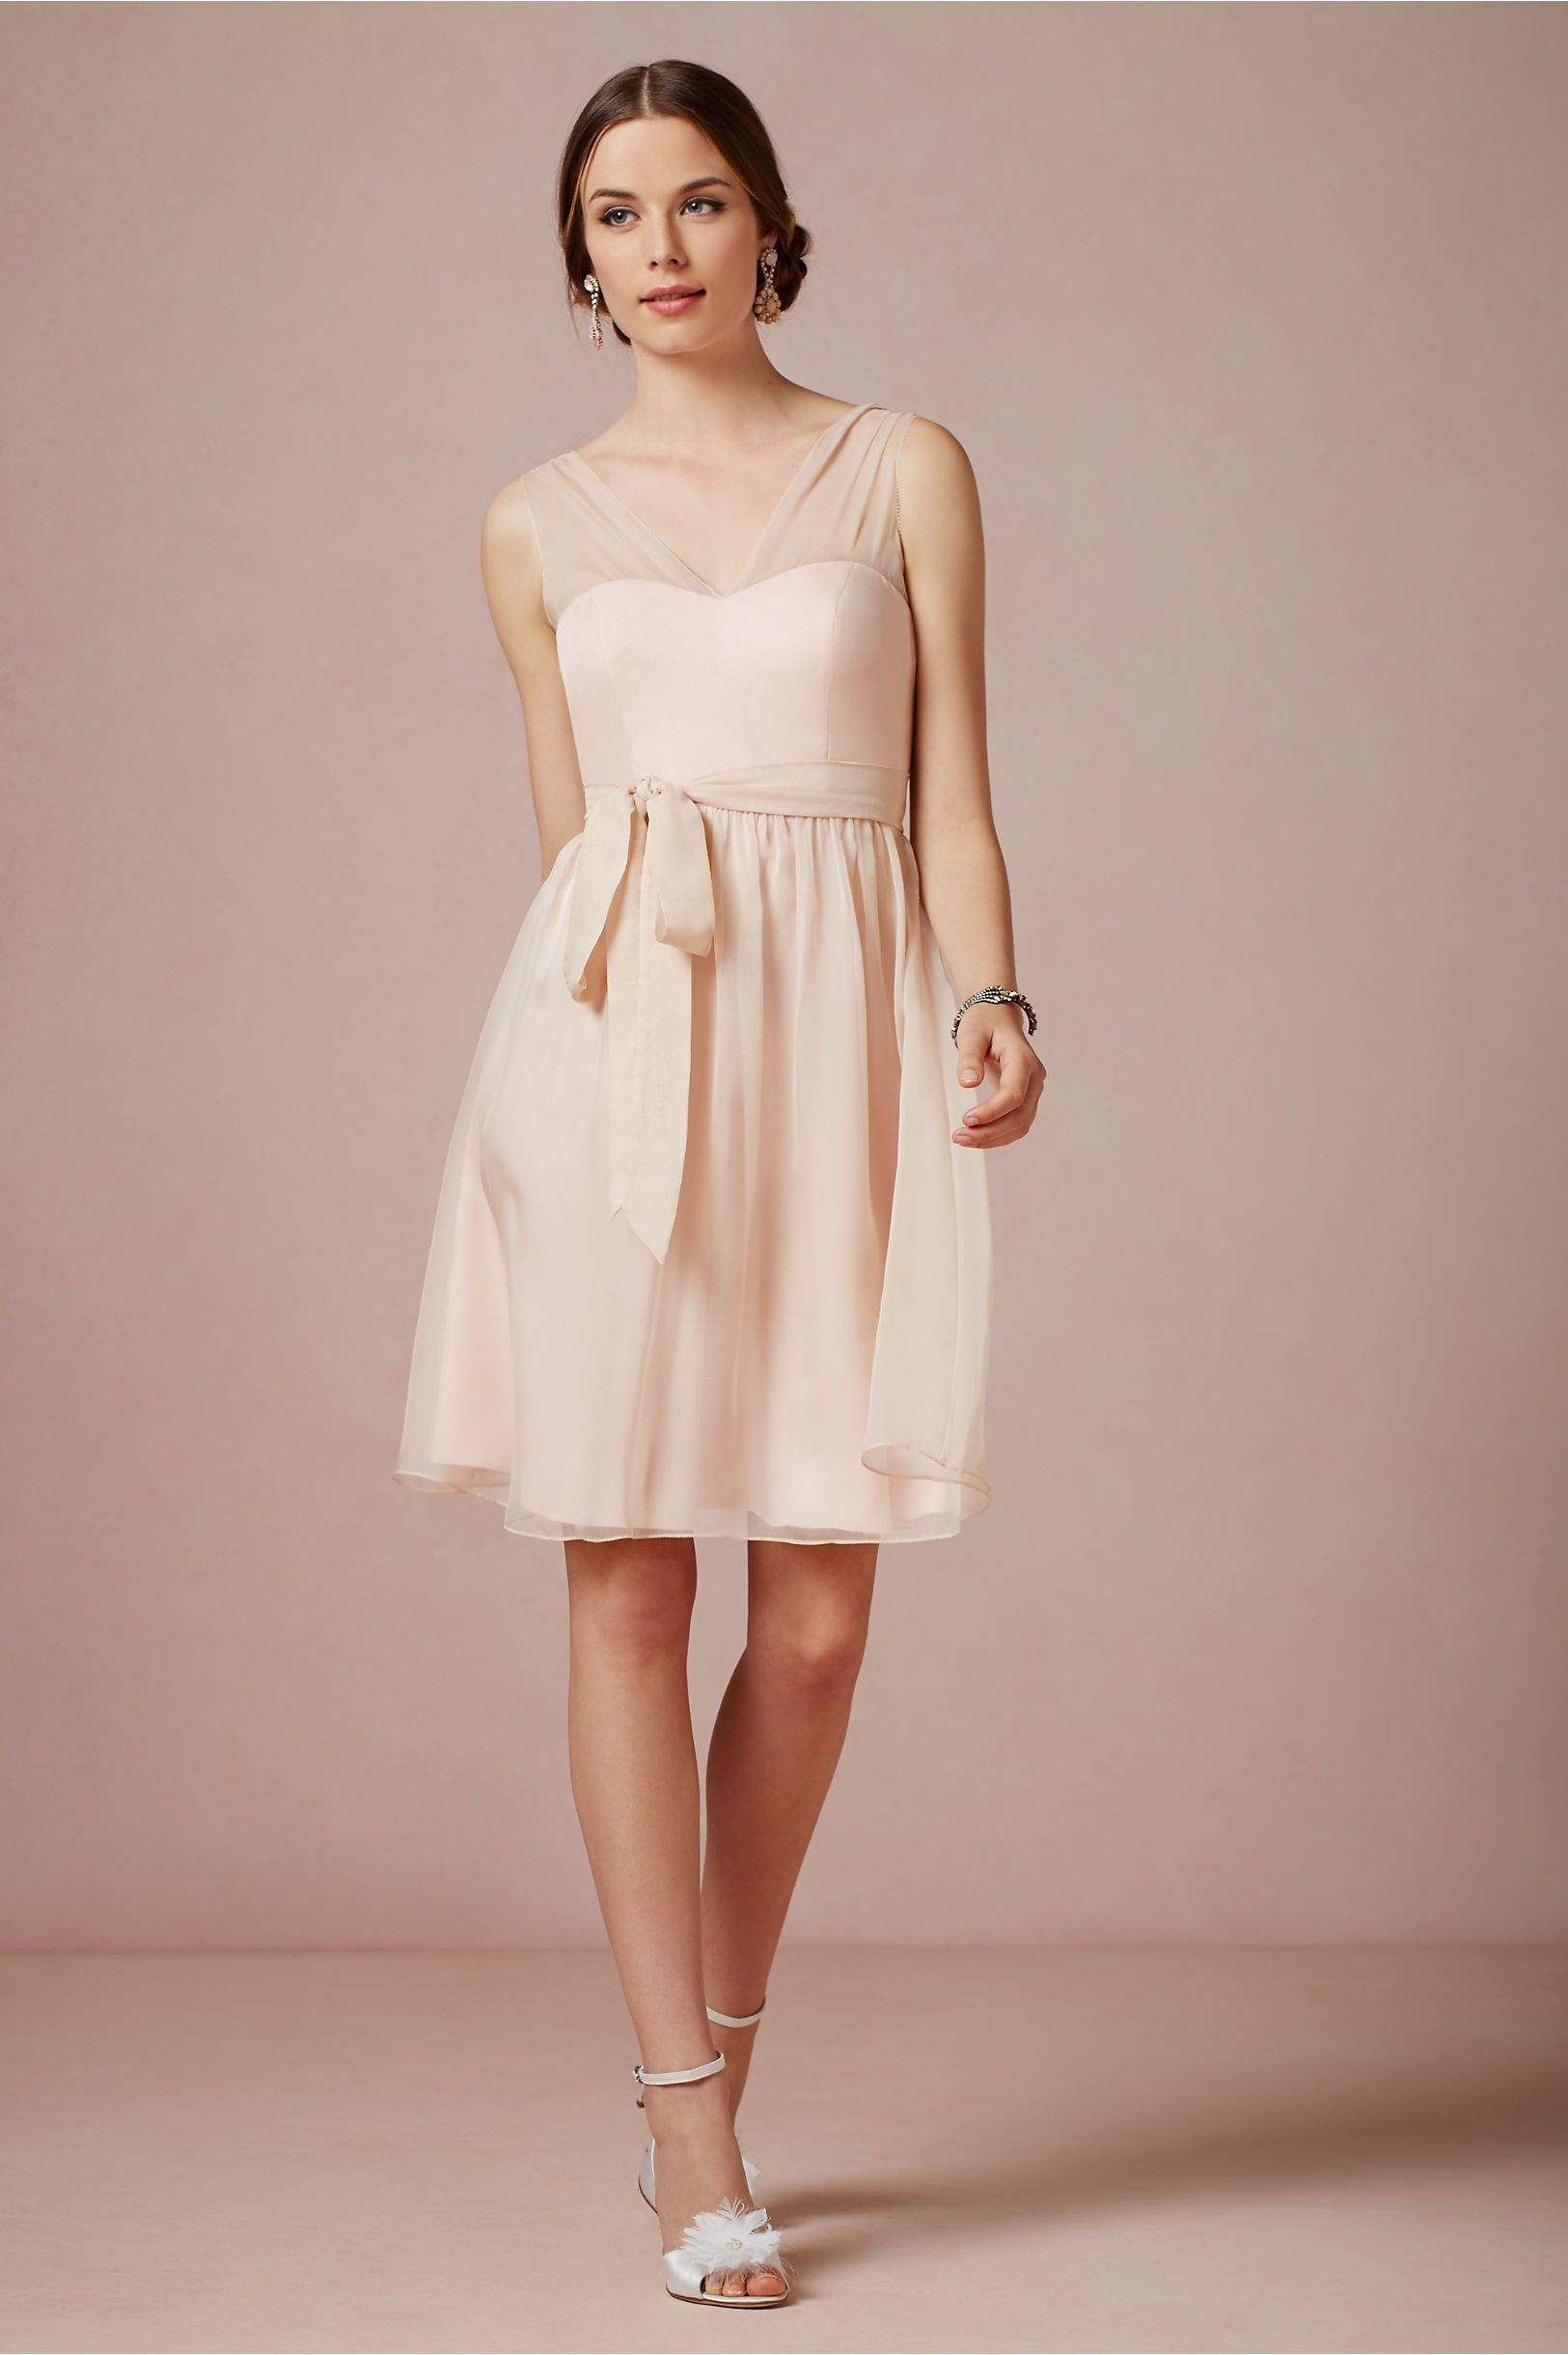 Ainsley dress in sale dresses at bhldn the dress pinterest